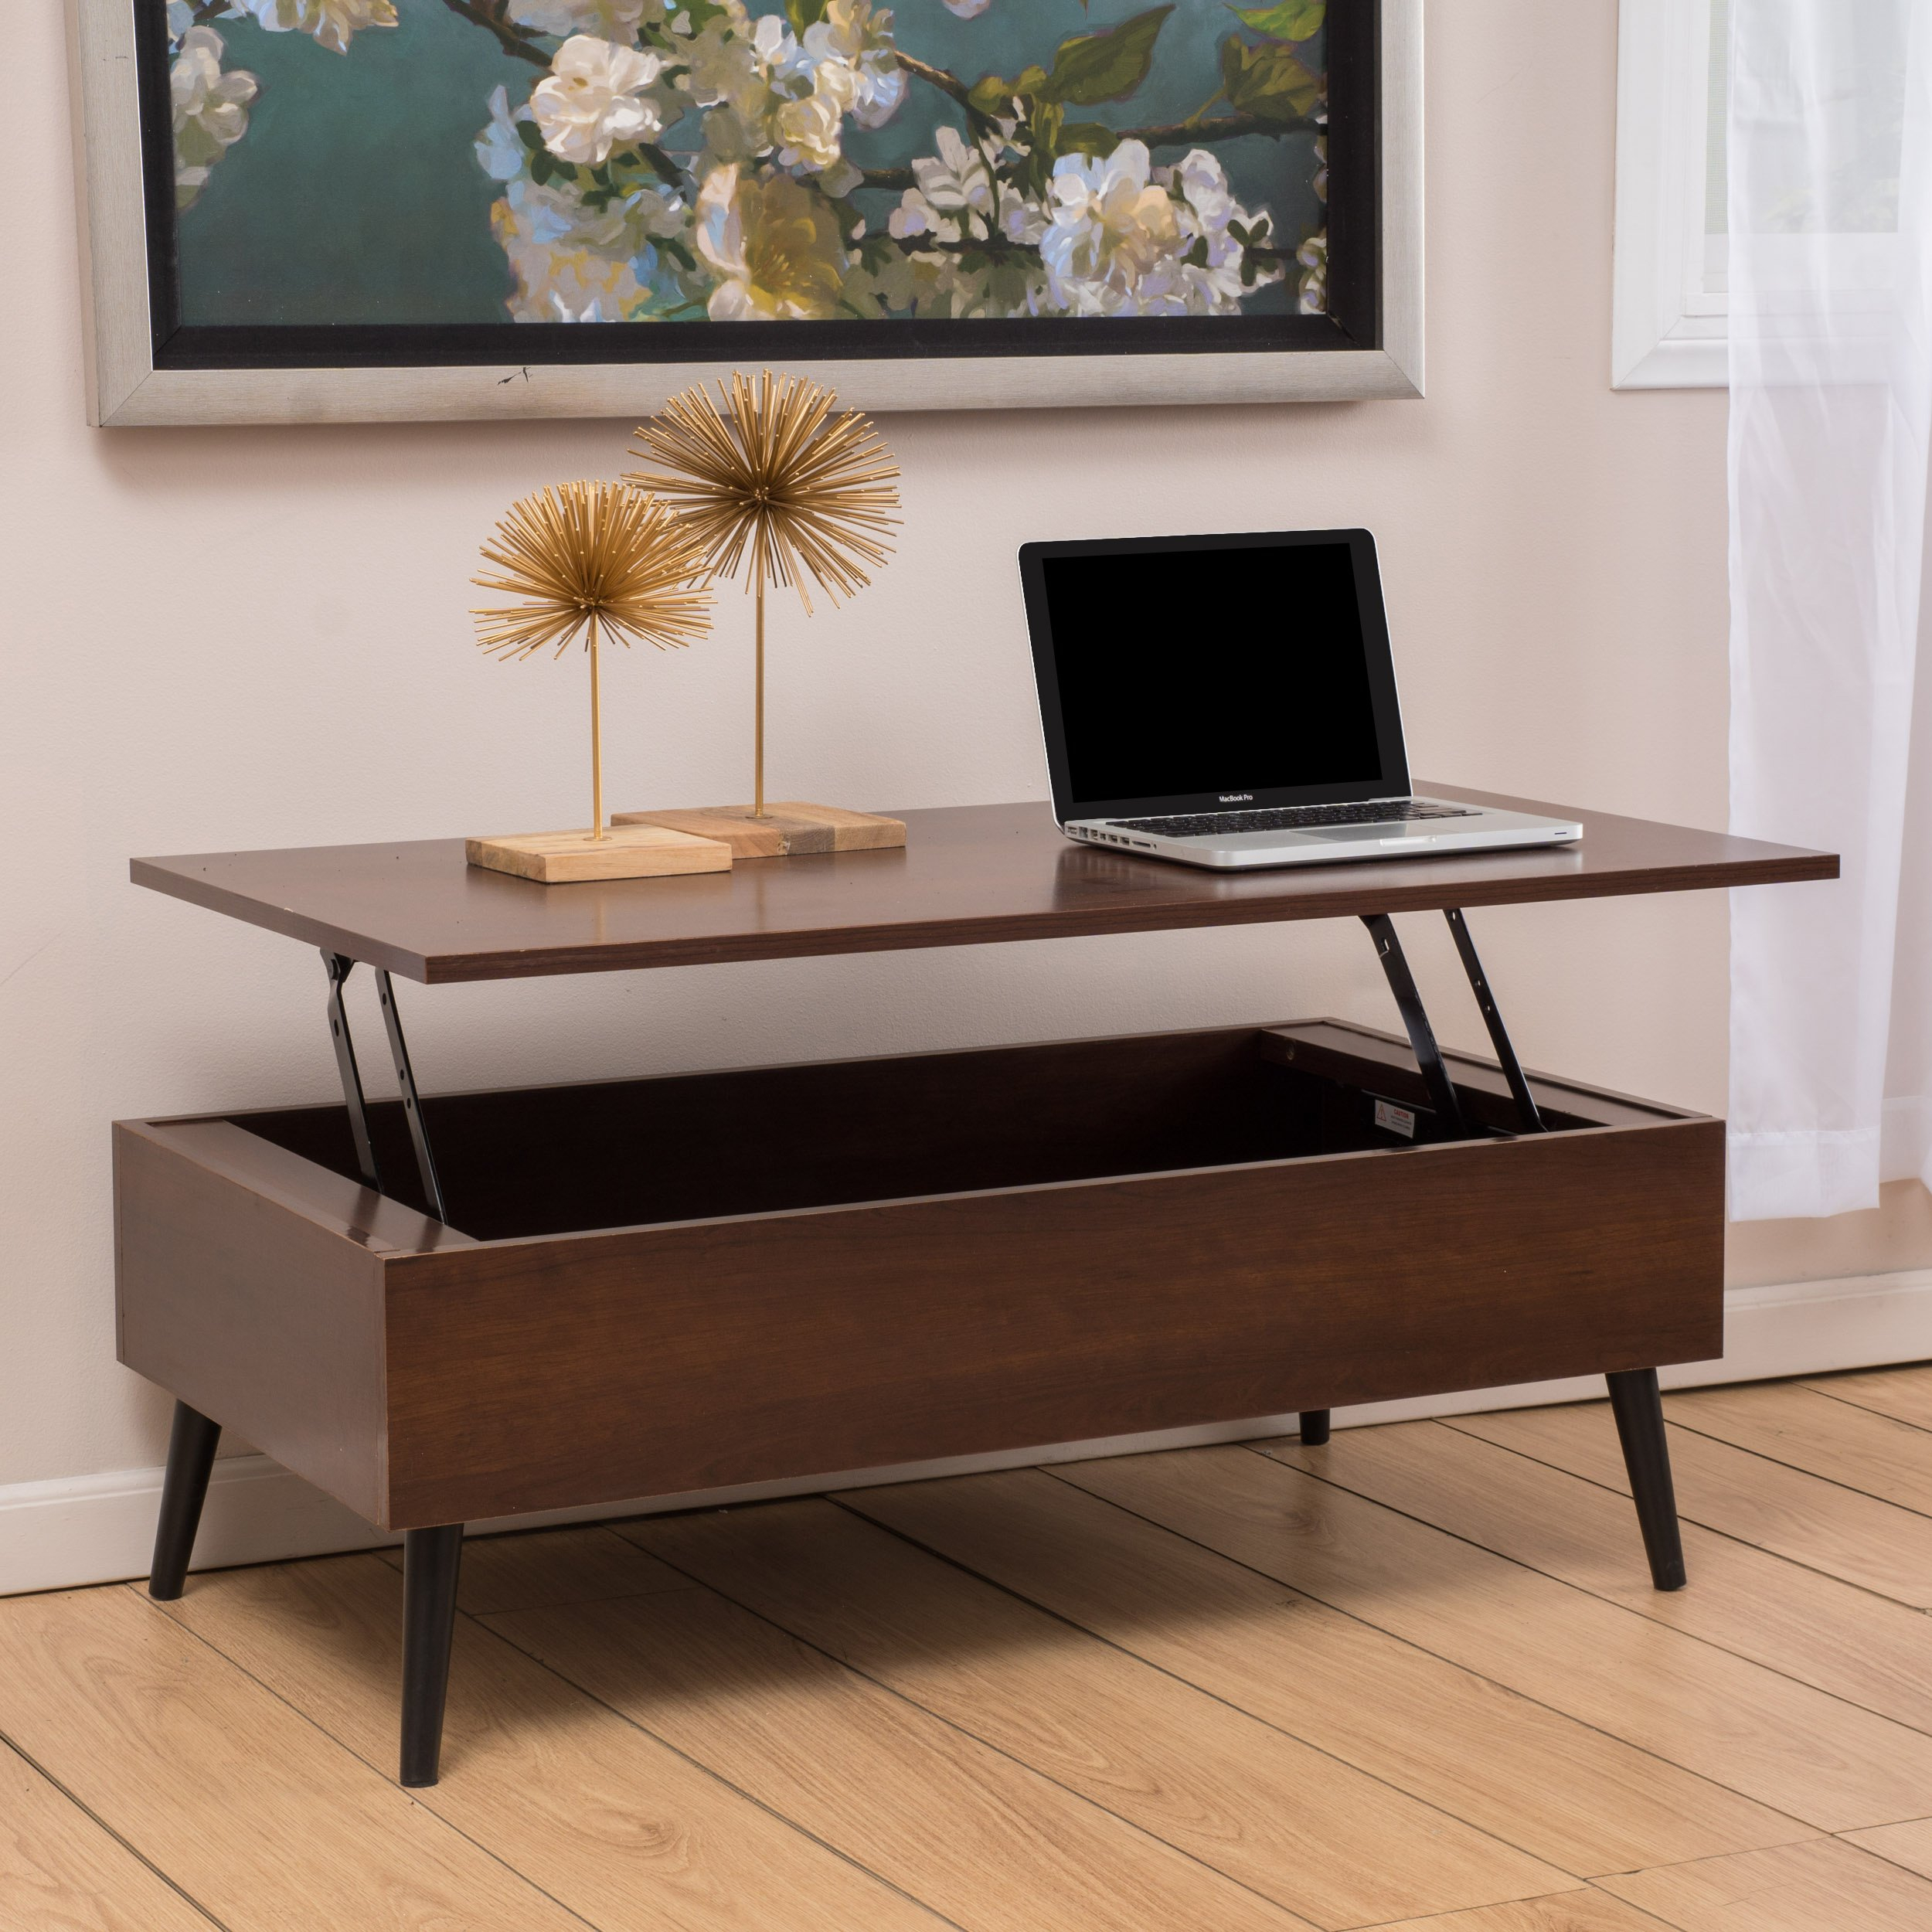 Caleb Mahogany Wood Lift Top Storage Coffee Table